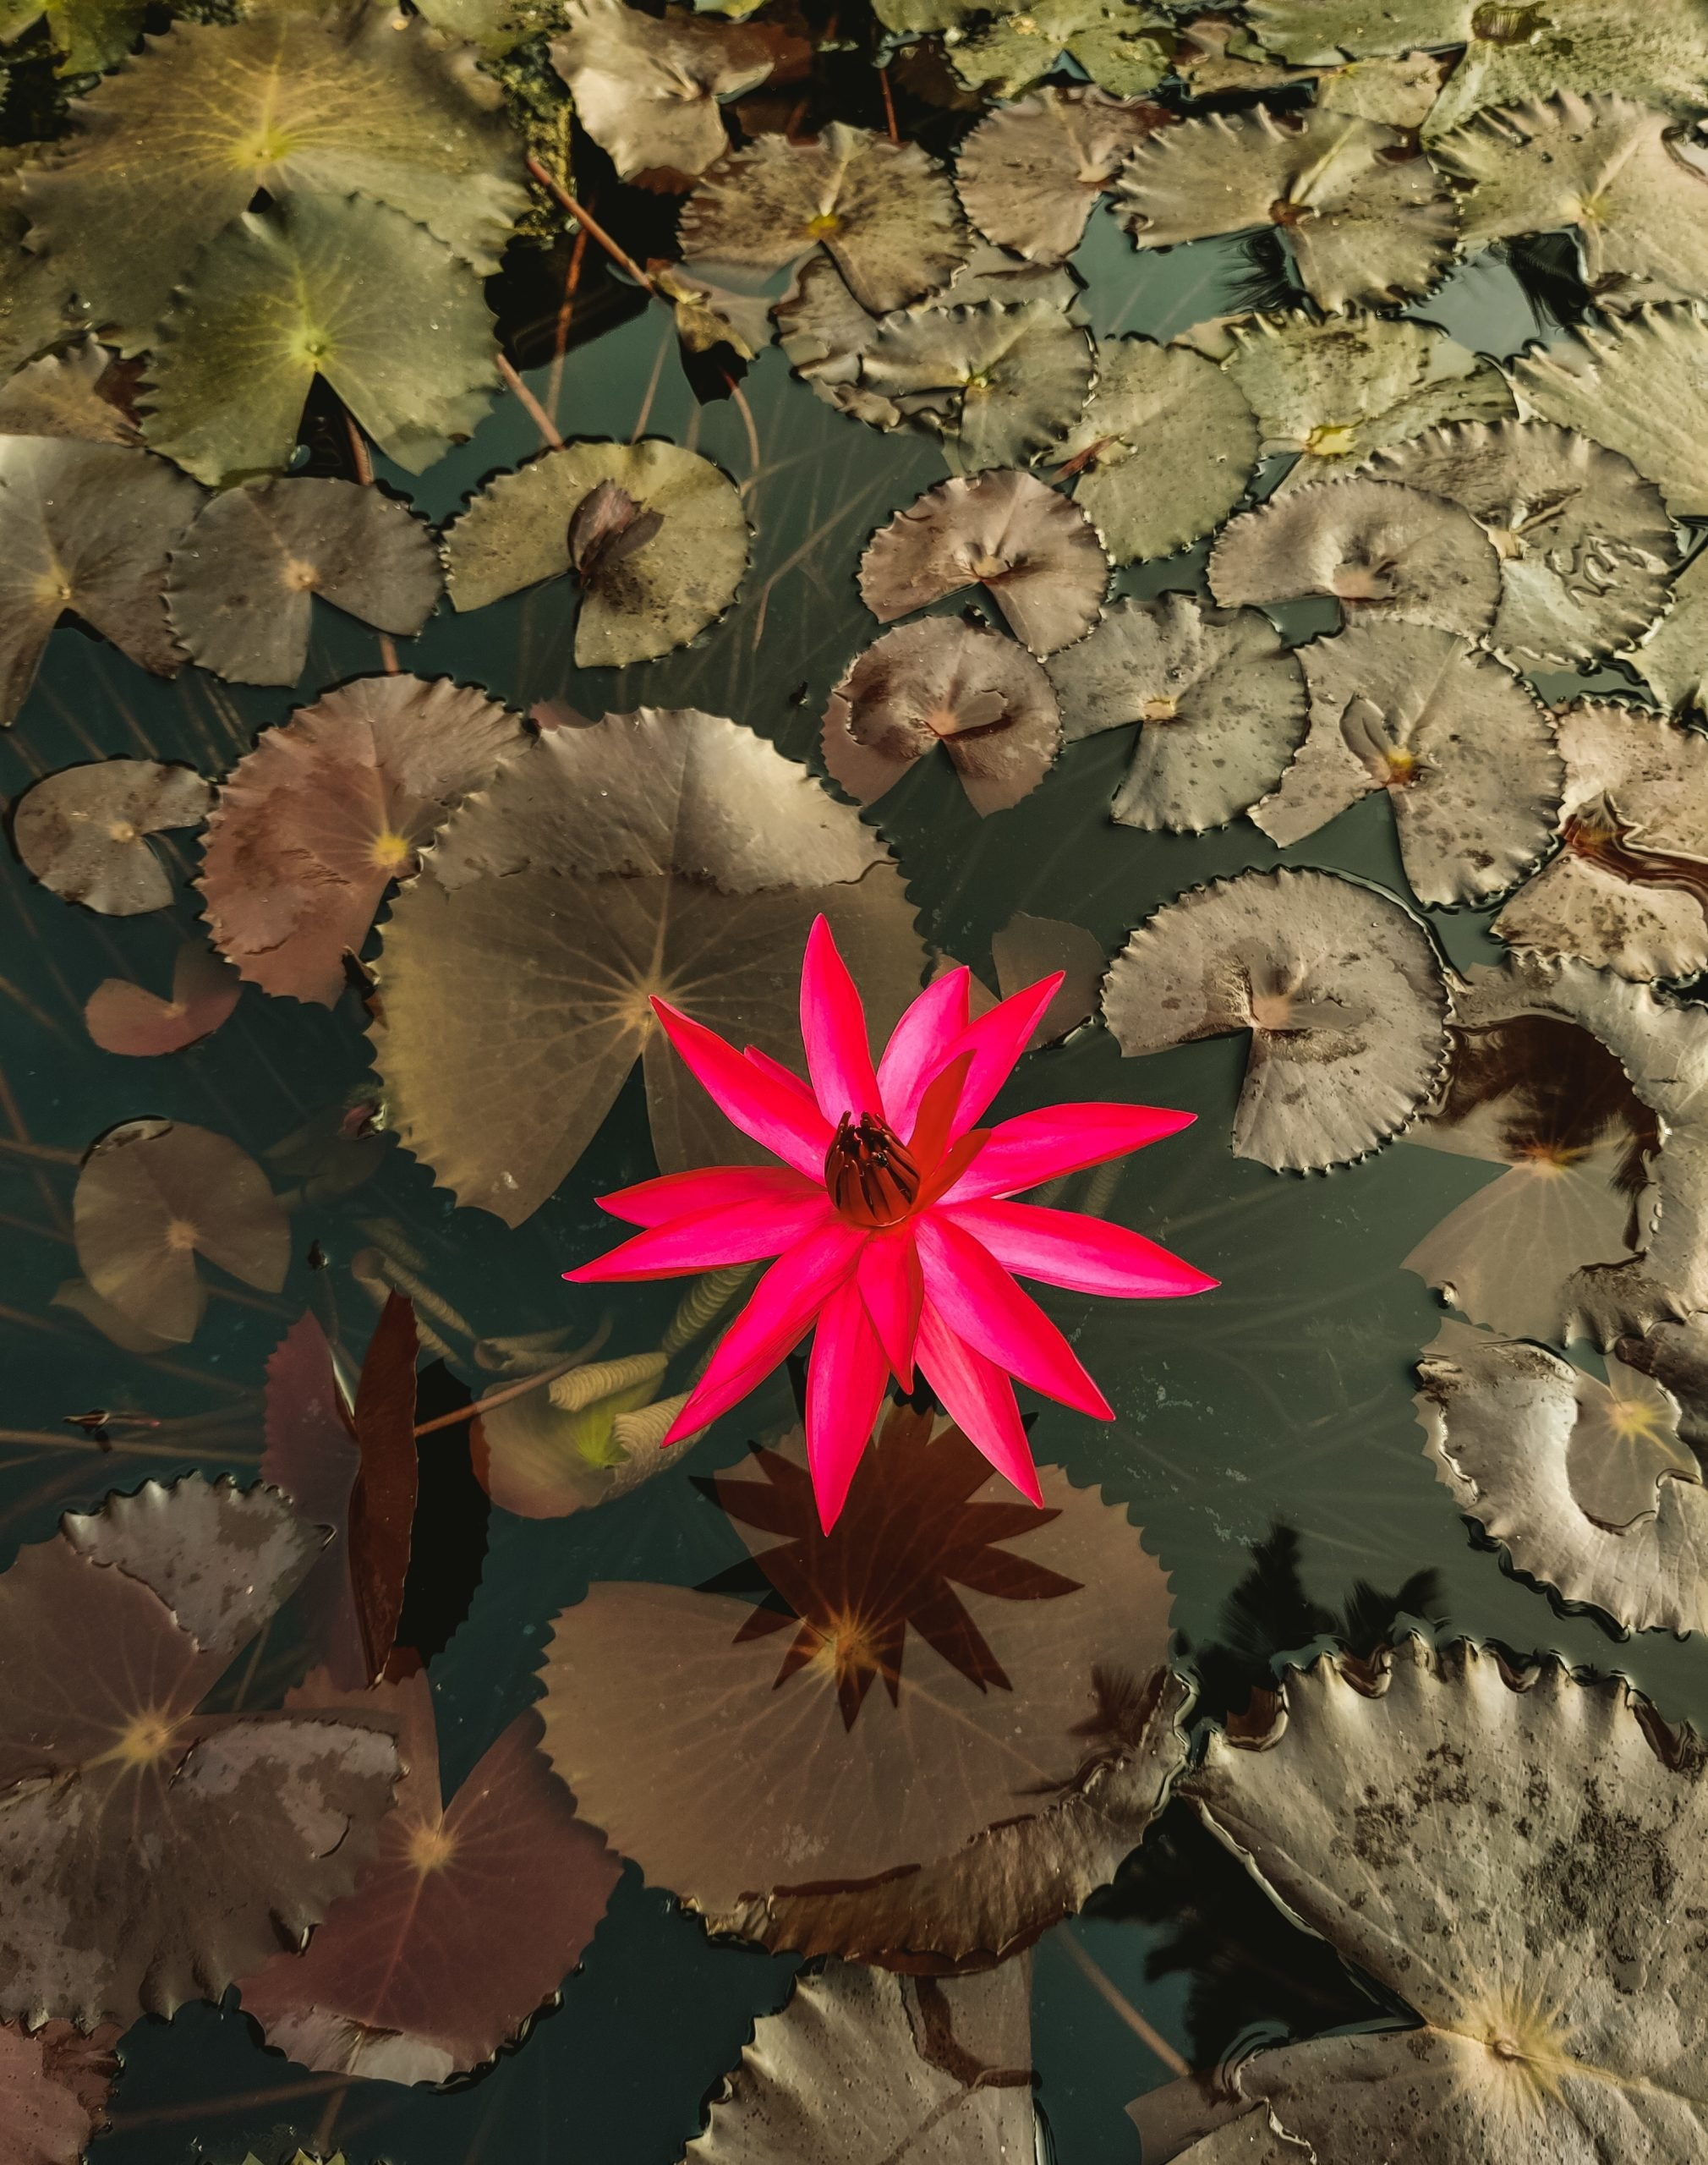 Flower in the pond